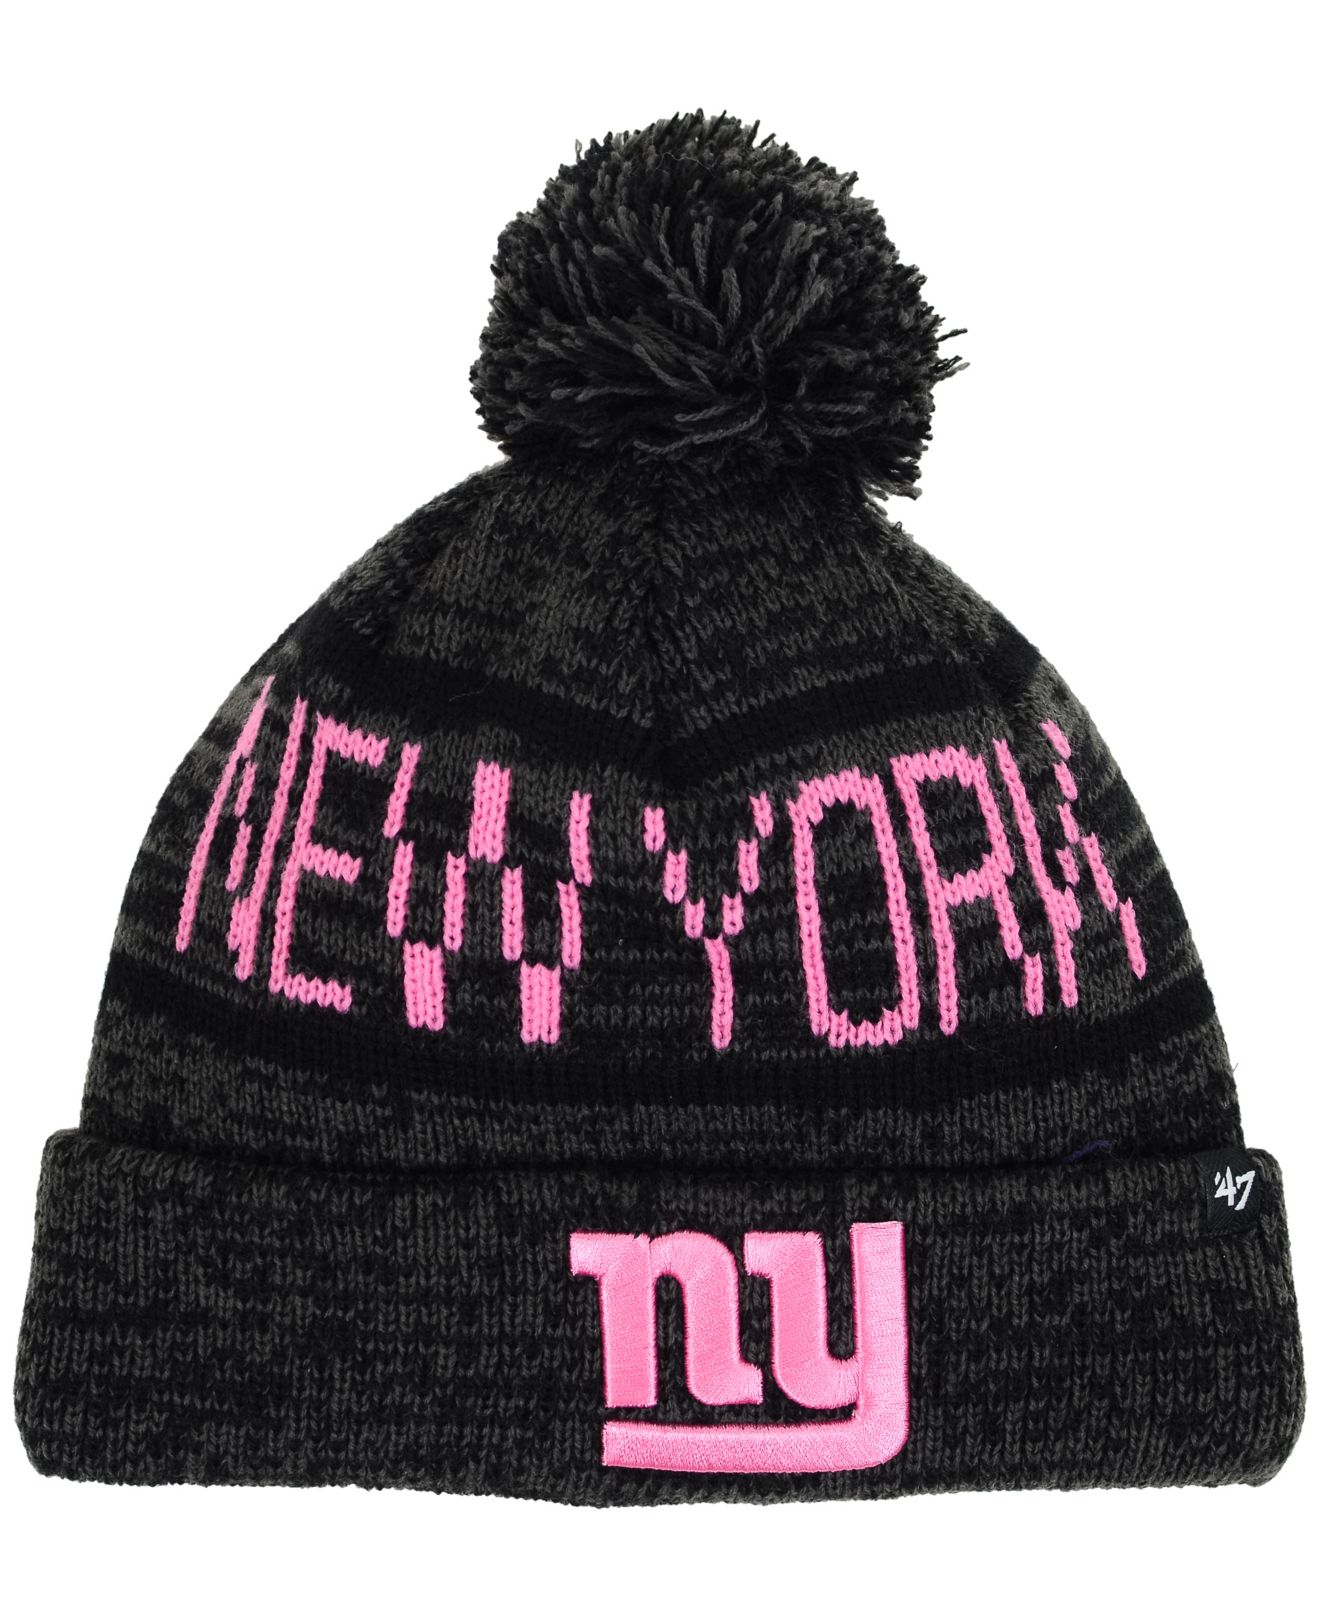 36eabecad27 Lyst - 47 Brand Women s New York Giants Northmont Pom Knit Hat in Gray